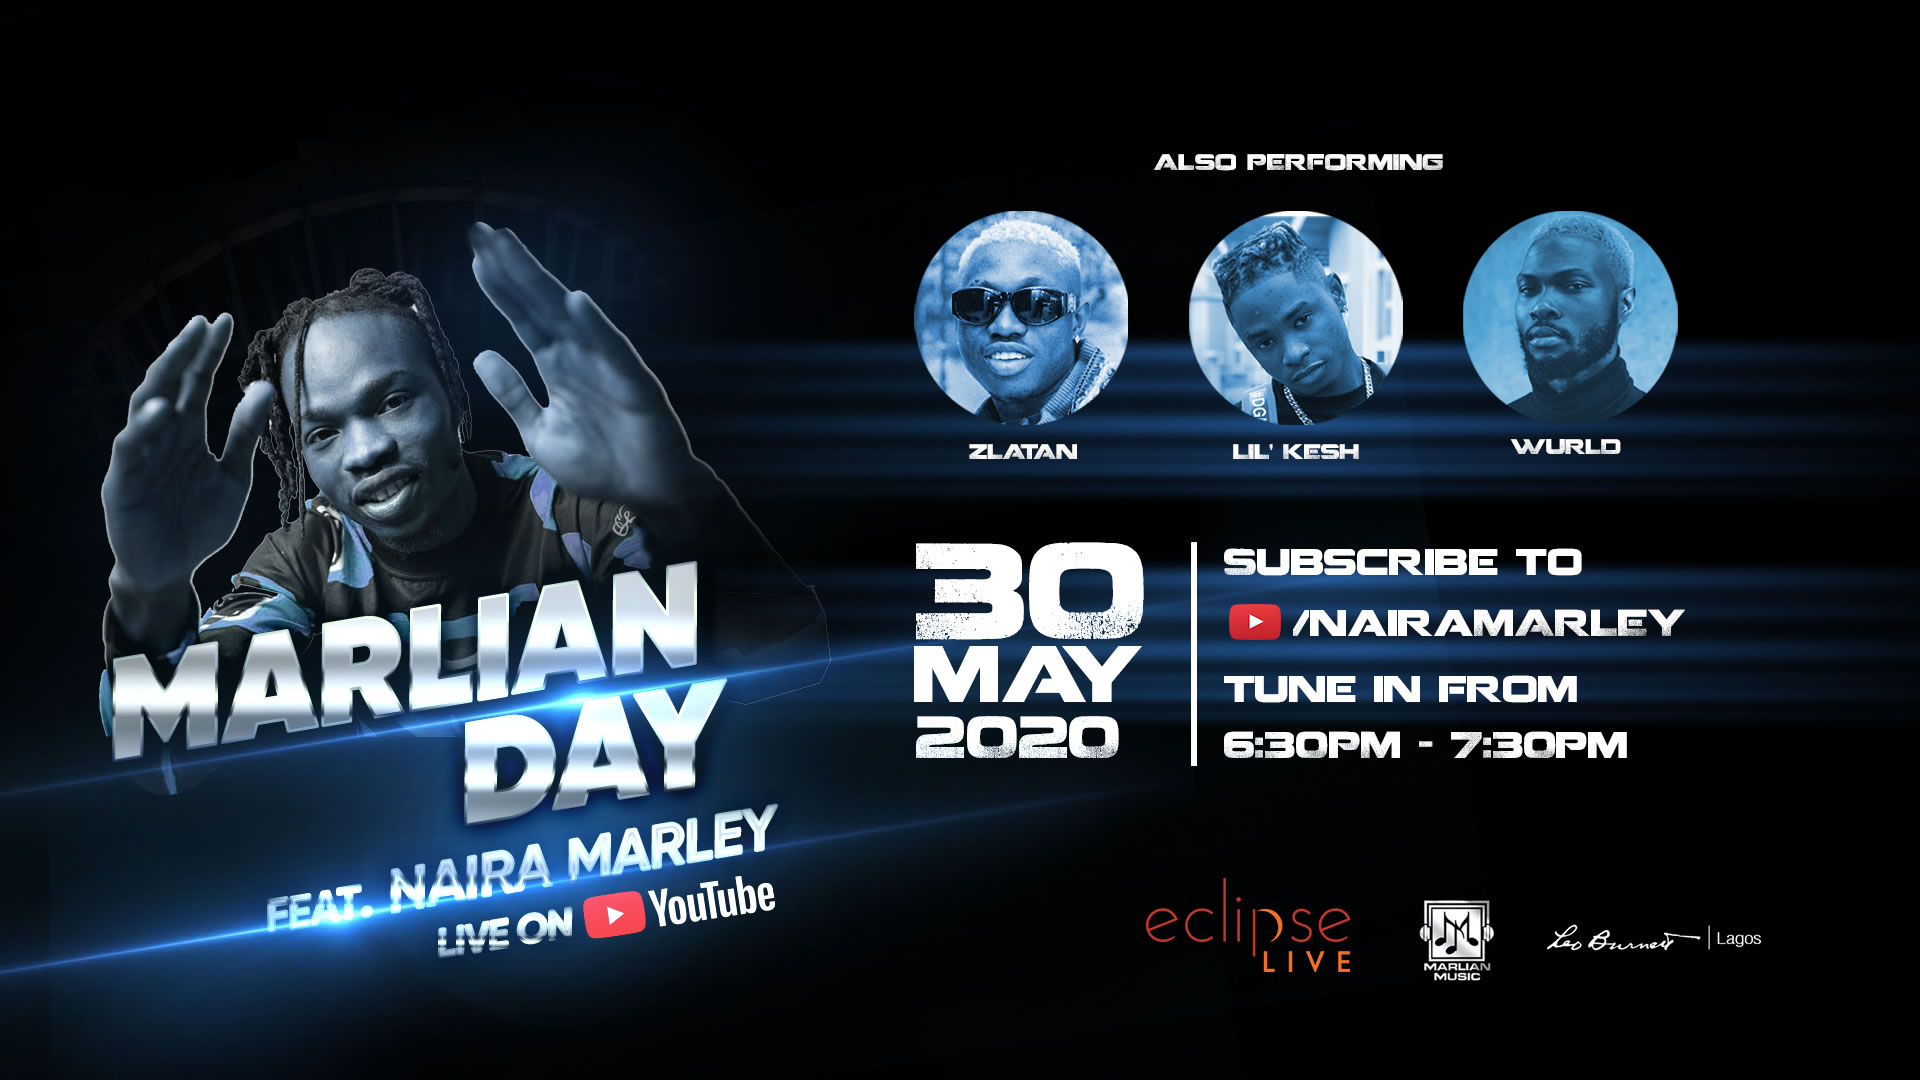 Marlian Day flyer gidi fest